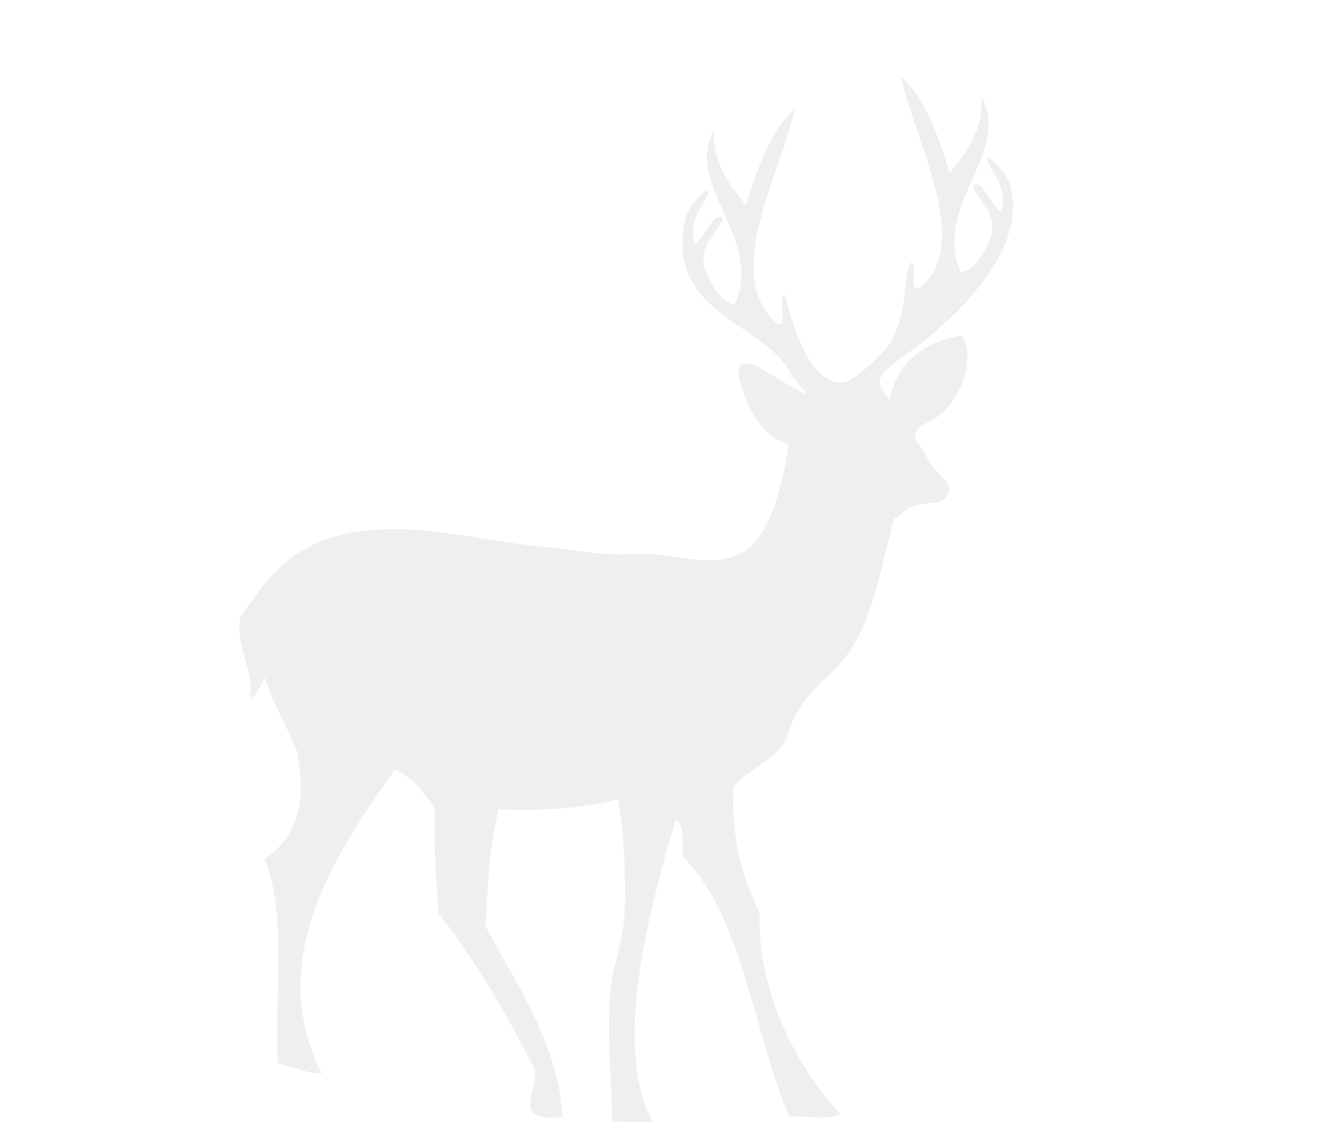 Reindeer black antlers png picture. Cartoon white tailed deer